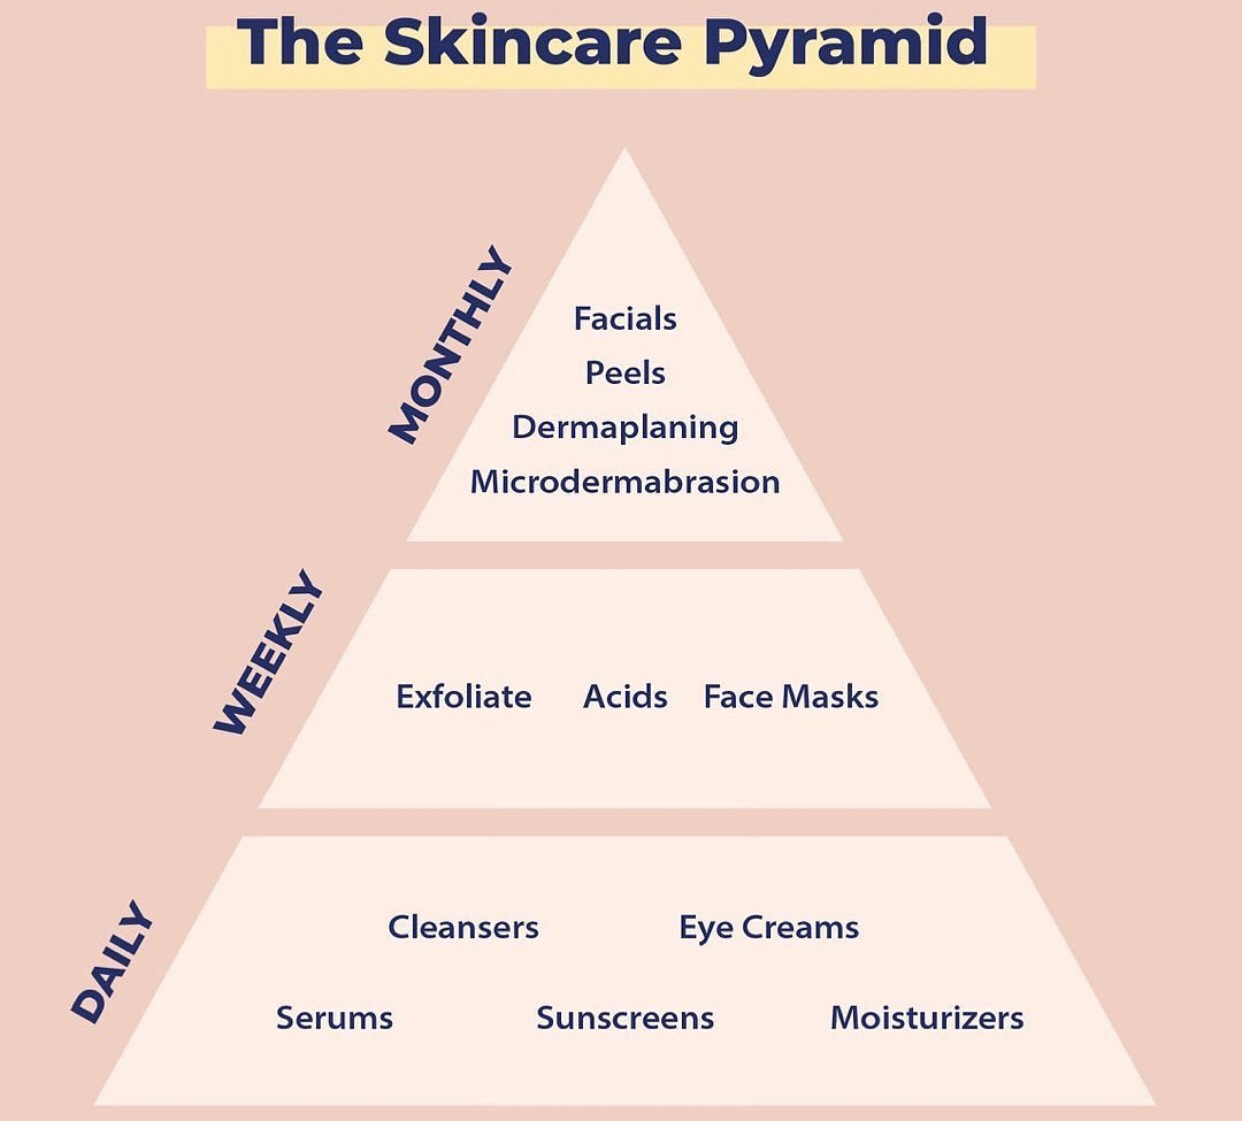 THE SKINCARE PYRAMID